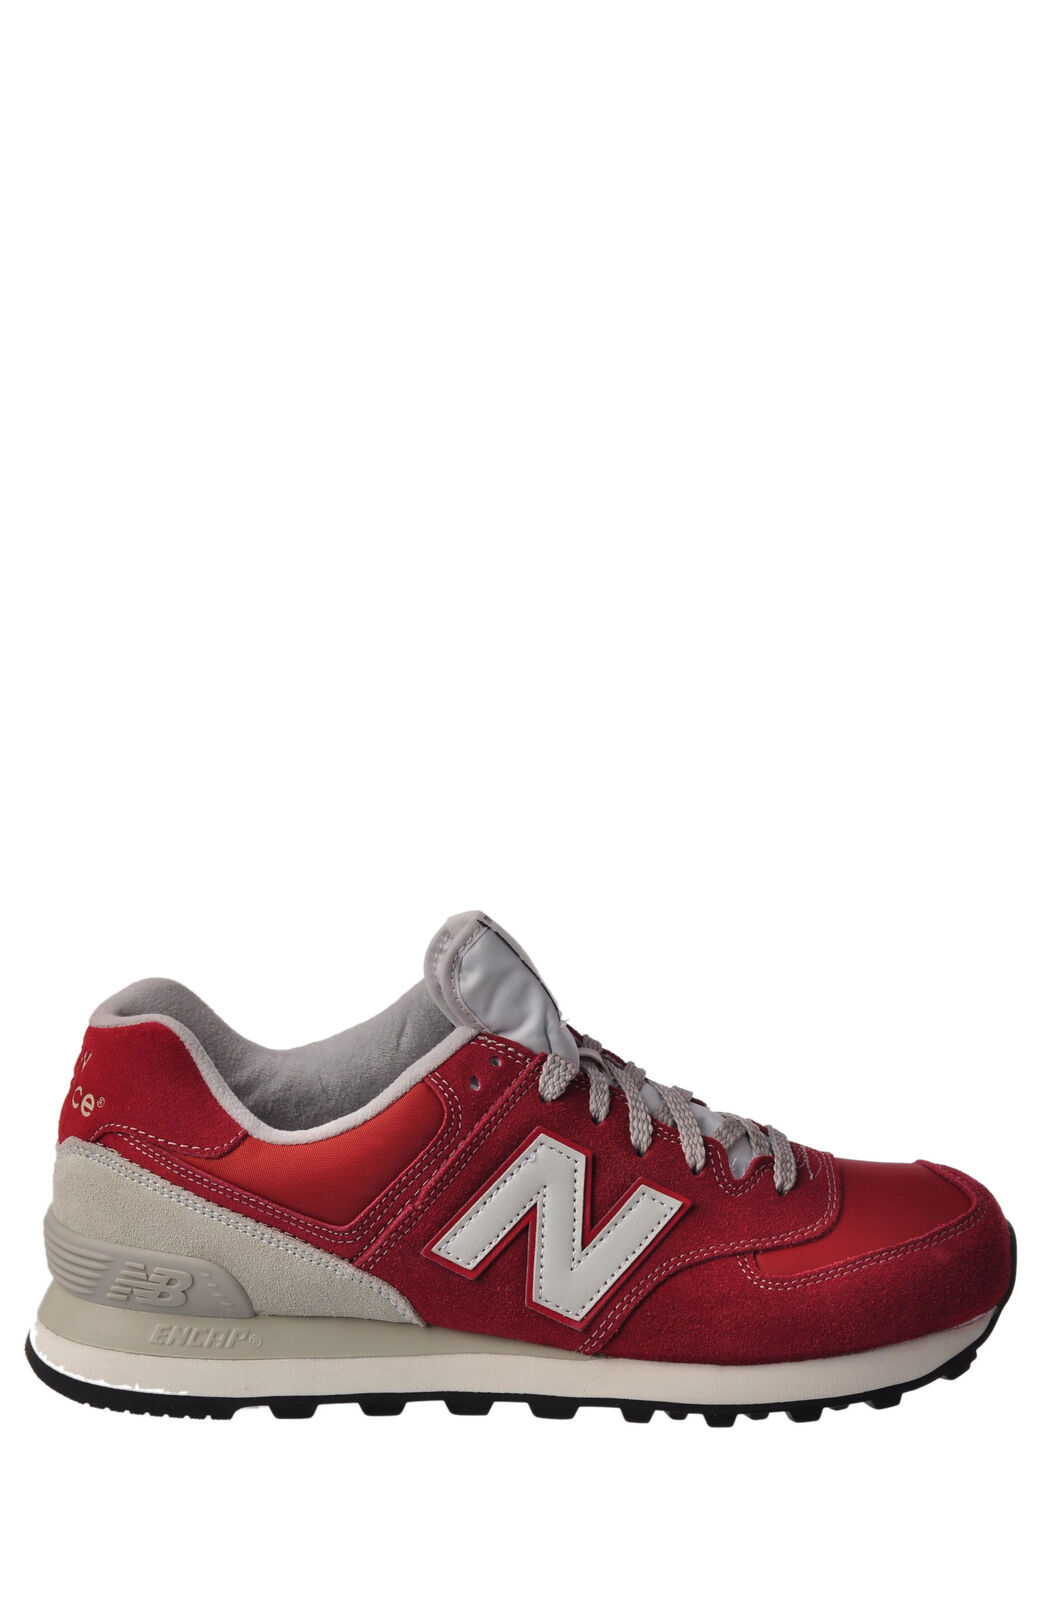 New Balance - shoes-Sneakers low - Man - Red - 890408G180837